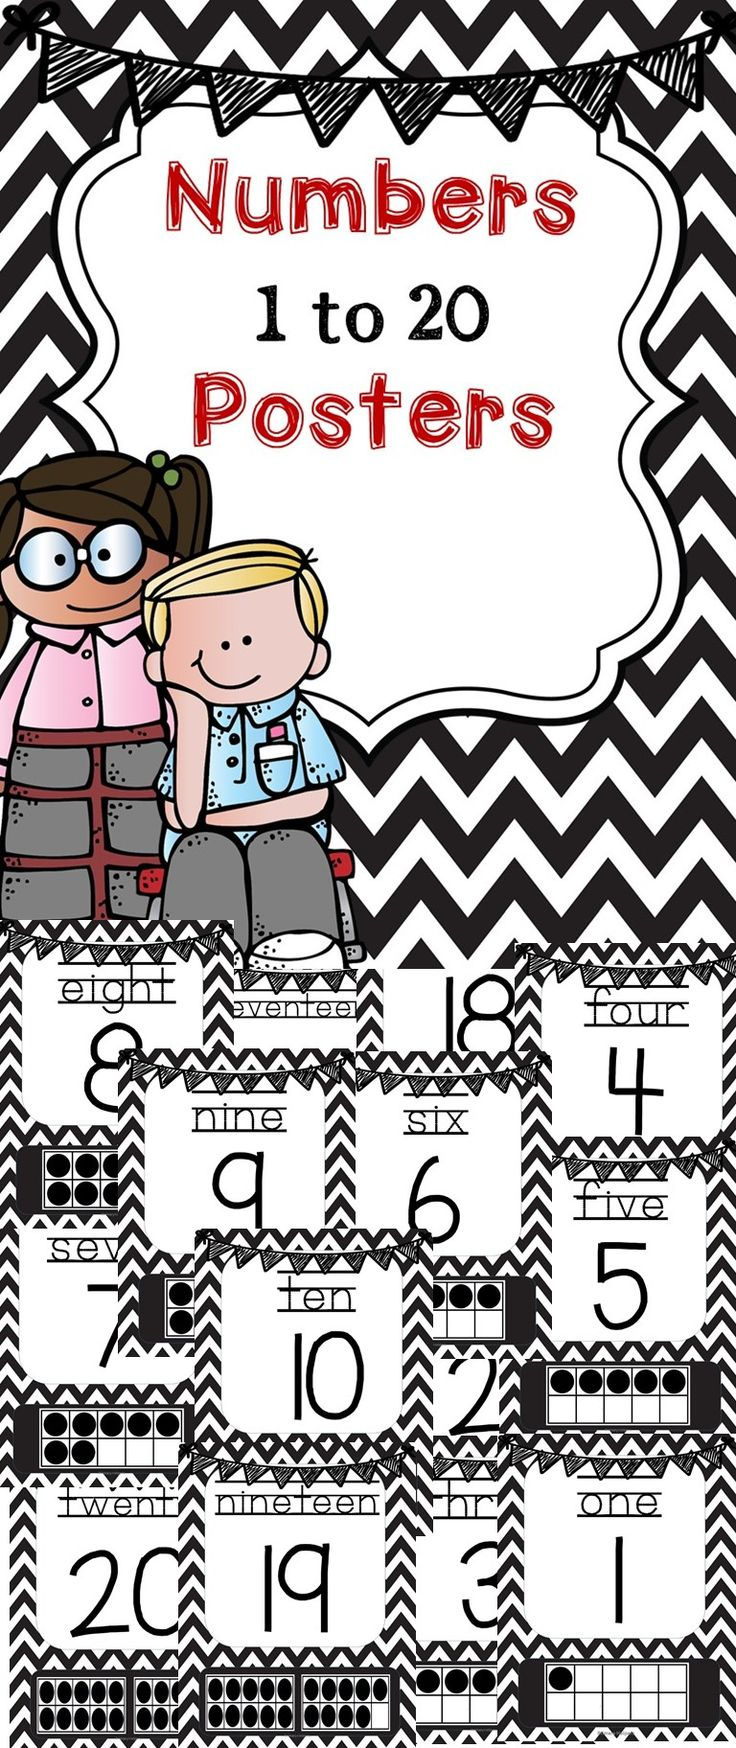 Chevron Number posters 1 to 20 in black and white and can be run on colored paper to match any decor.